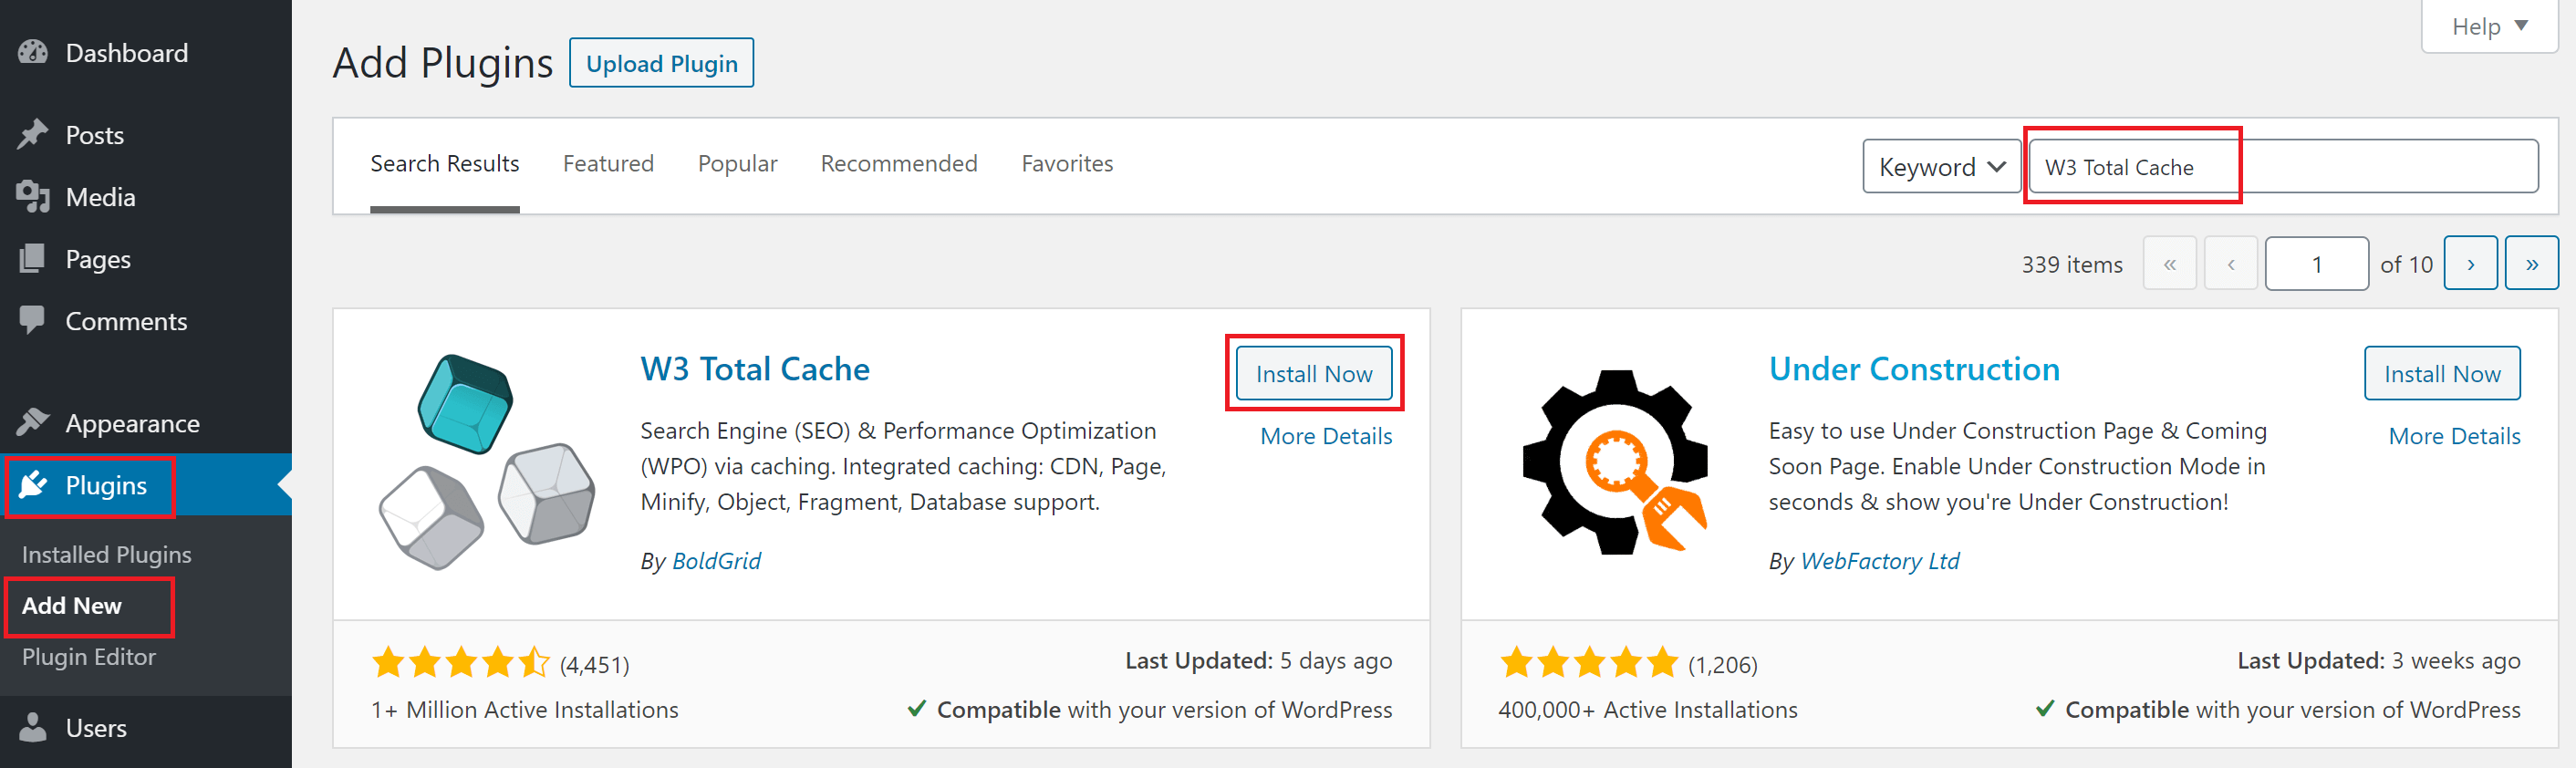 Install W3 Total Cache